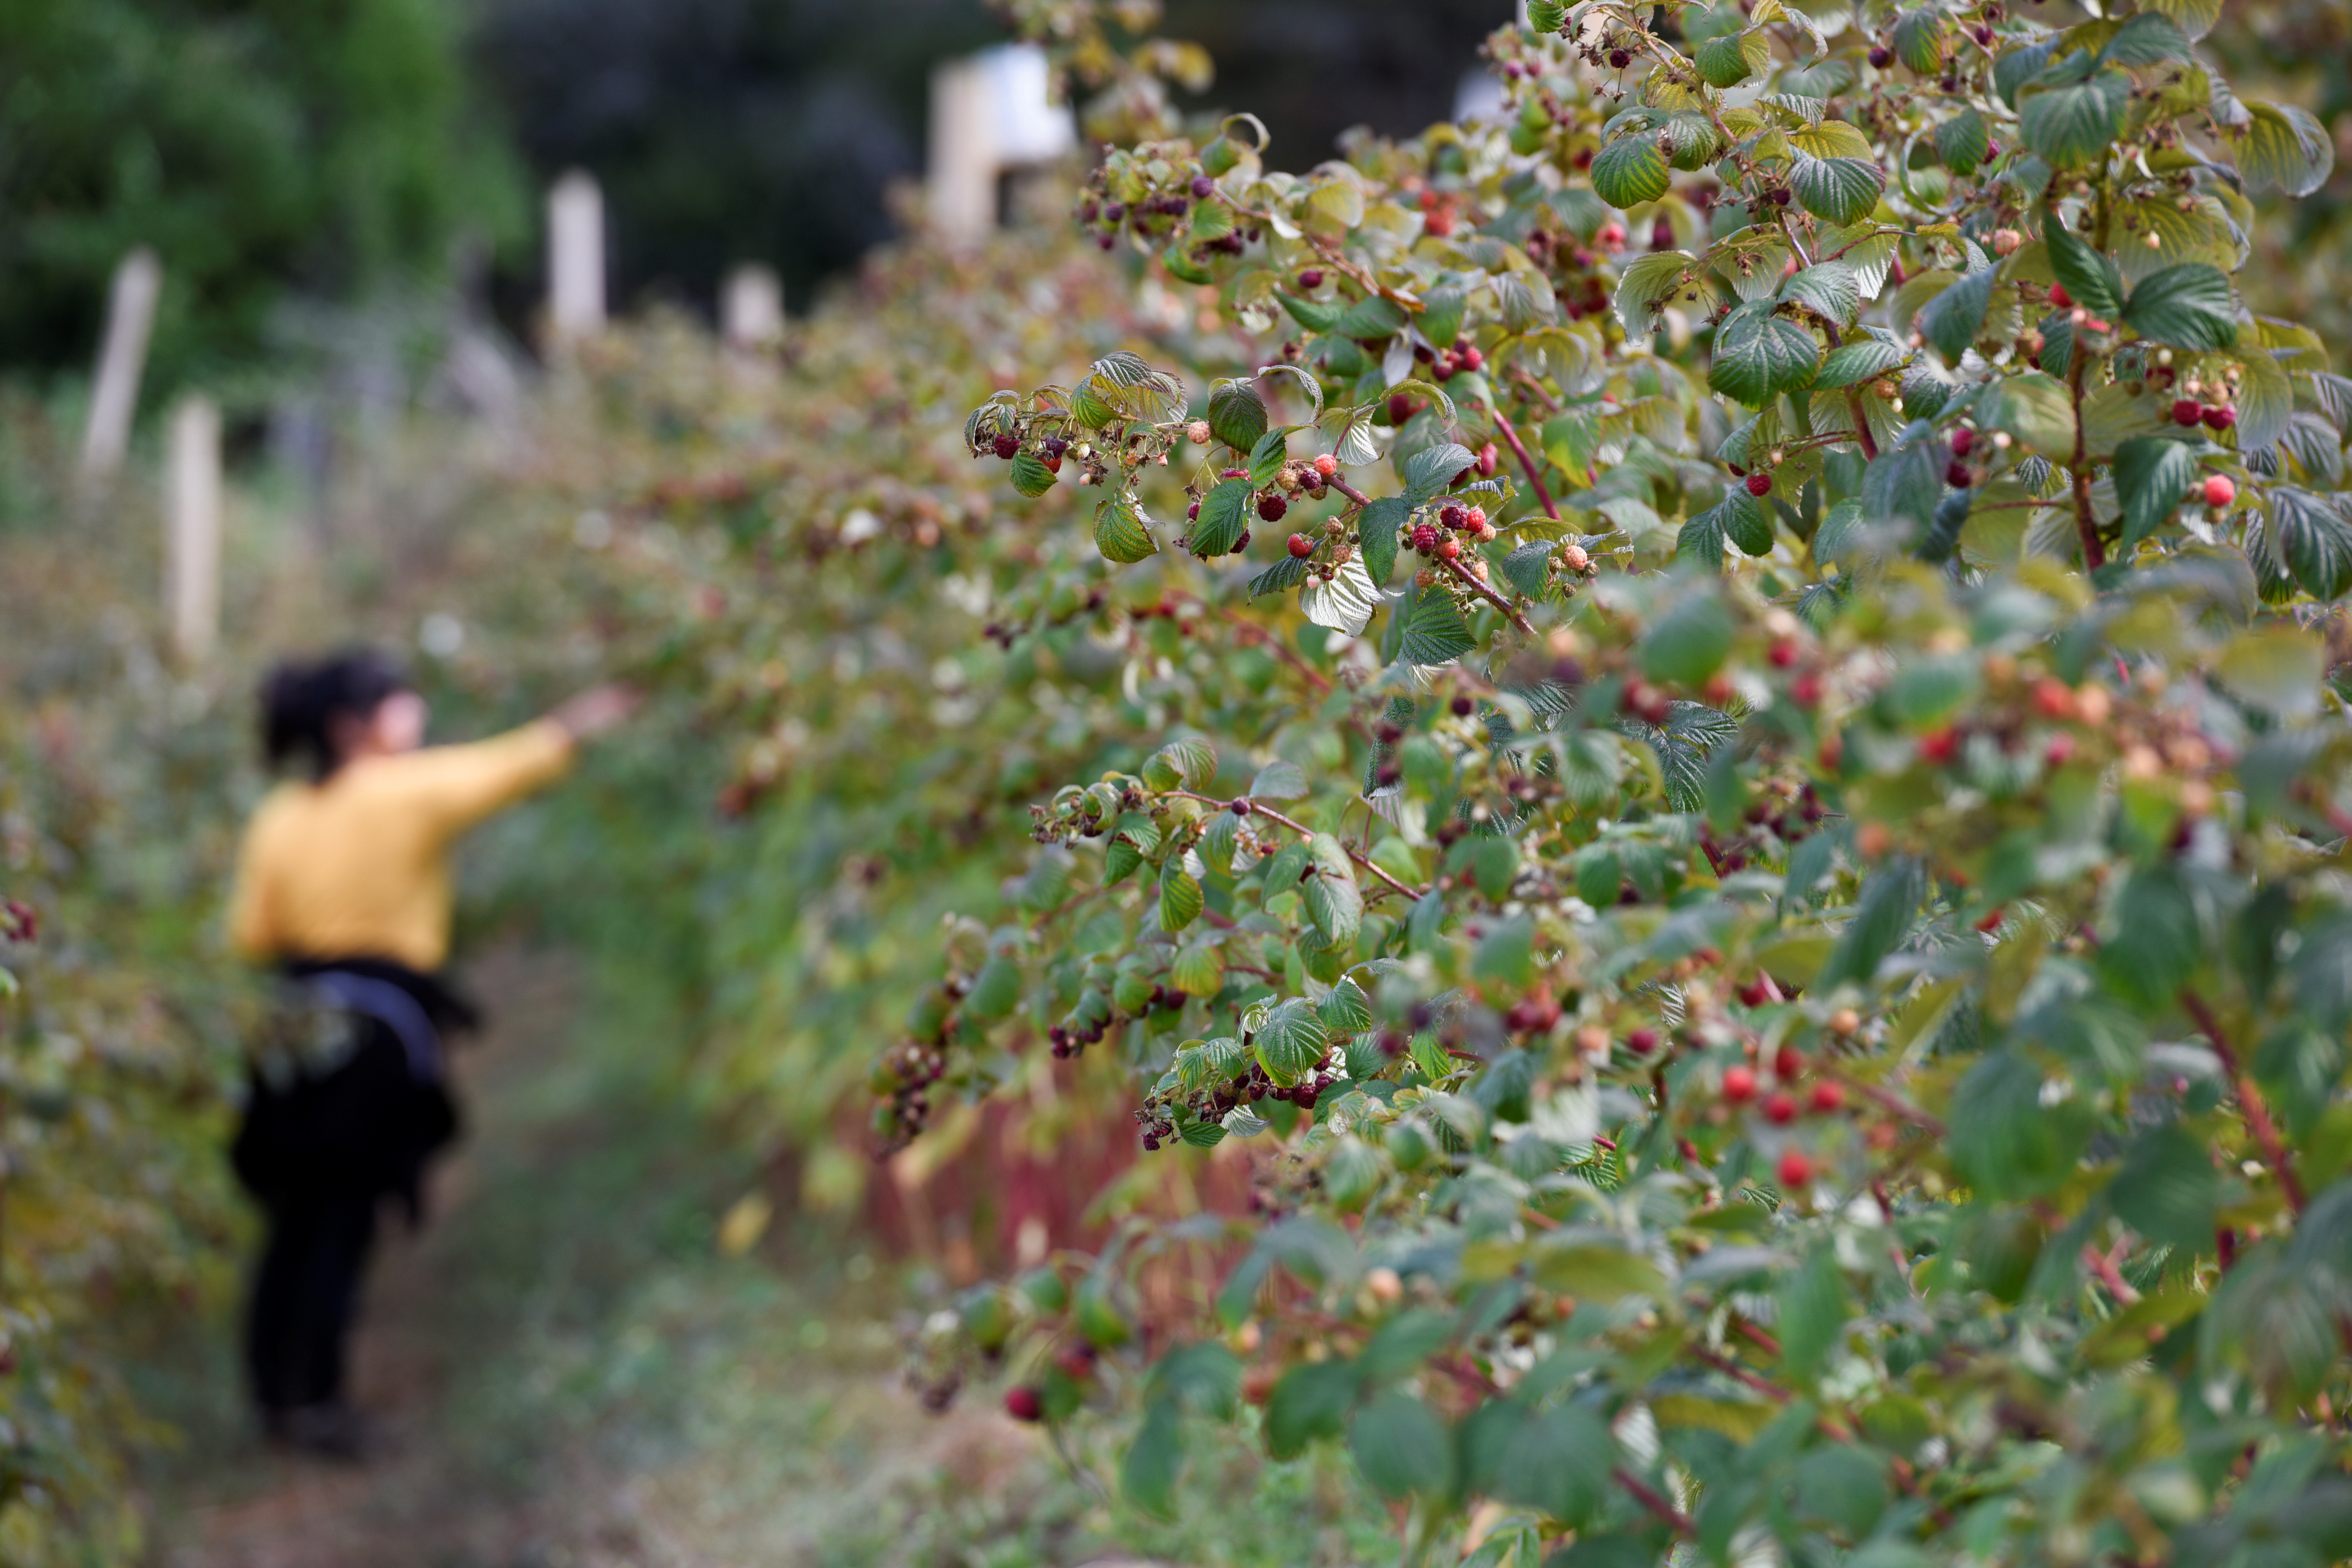 A woman harvests raspberries at a local farm near Chillan, Chile March 13, 2020. Picture taken March 13, 2020. REUTERS/Jose Luis Saavedra - RC2YCJ9G8CAM